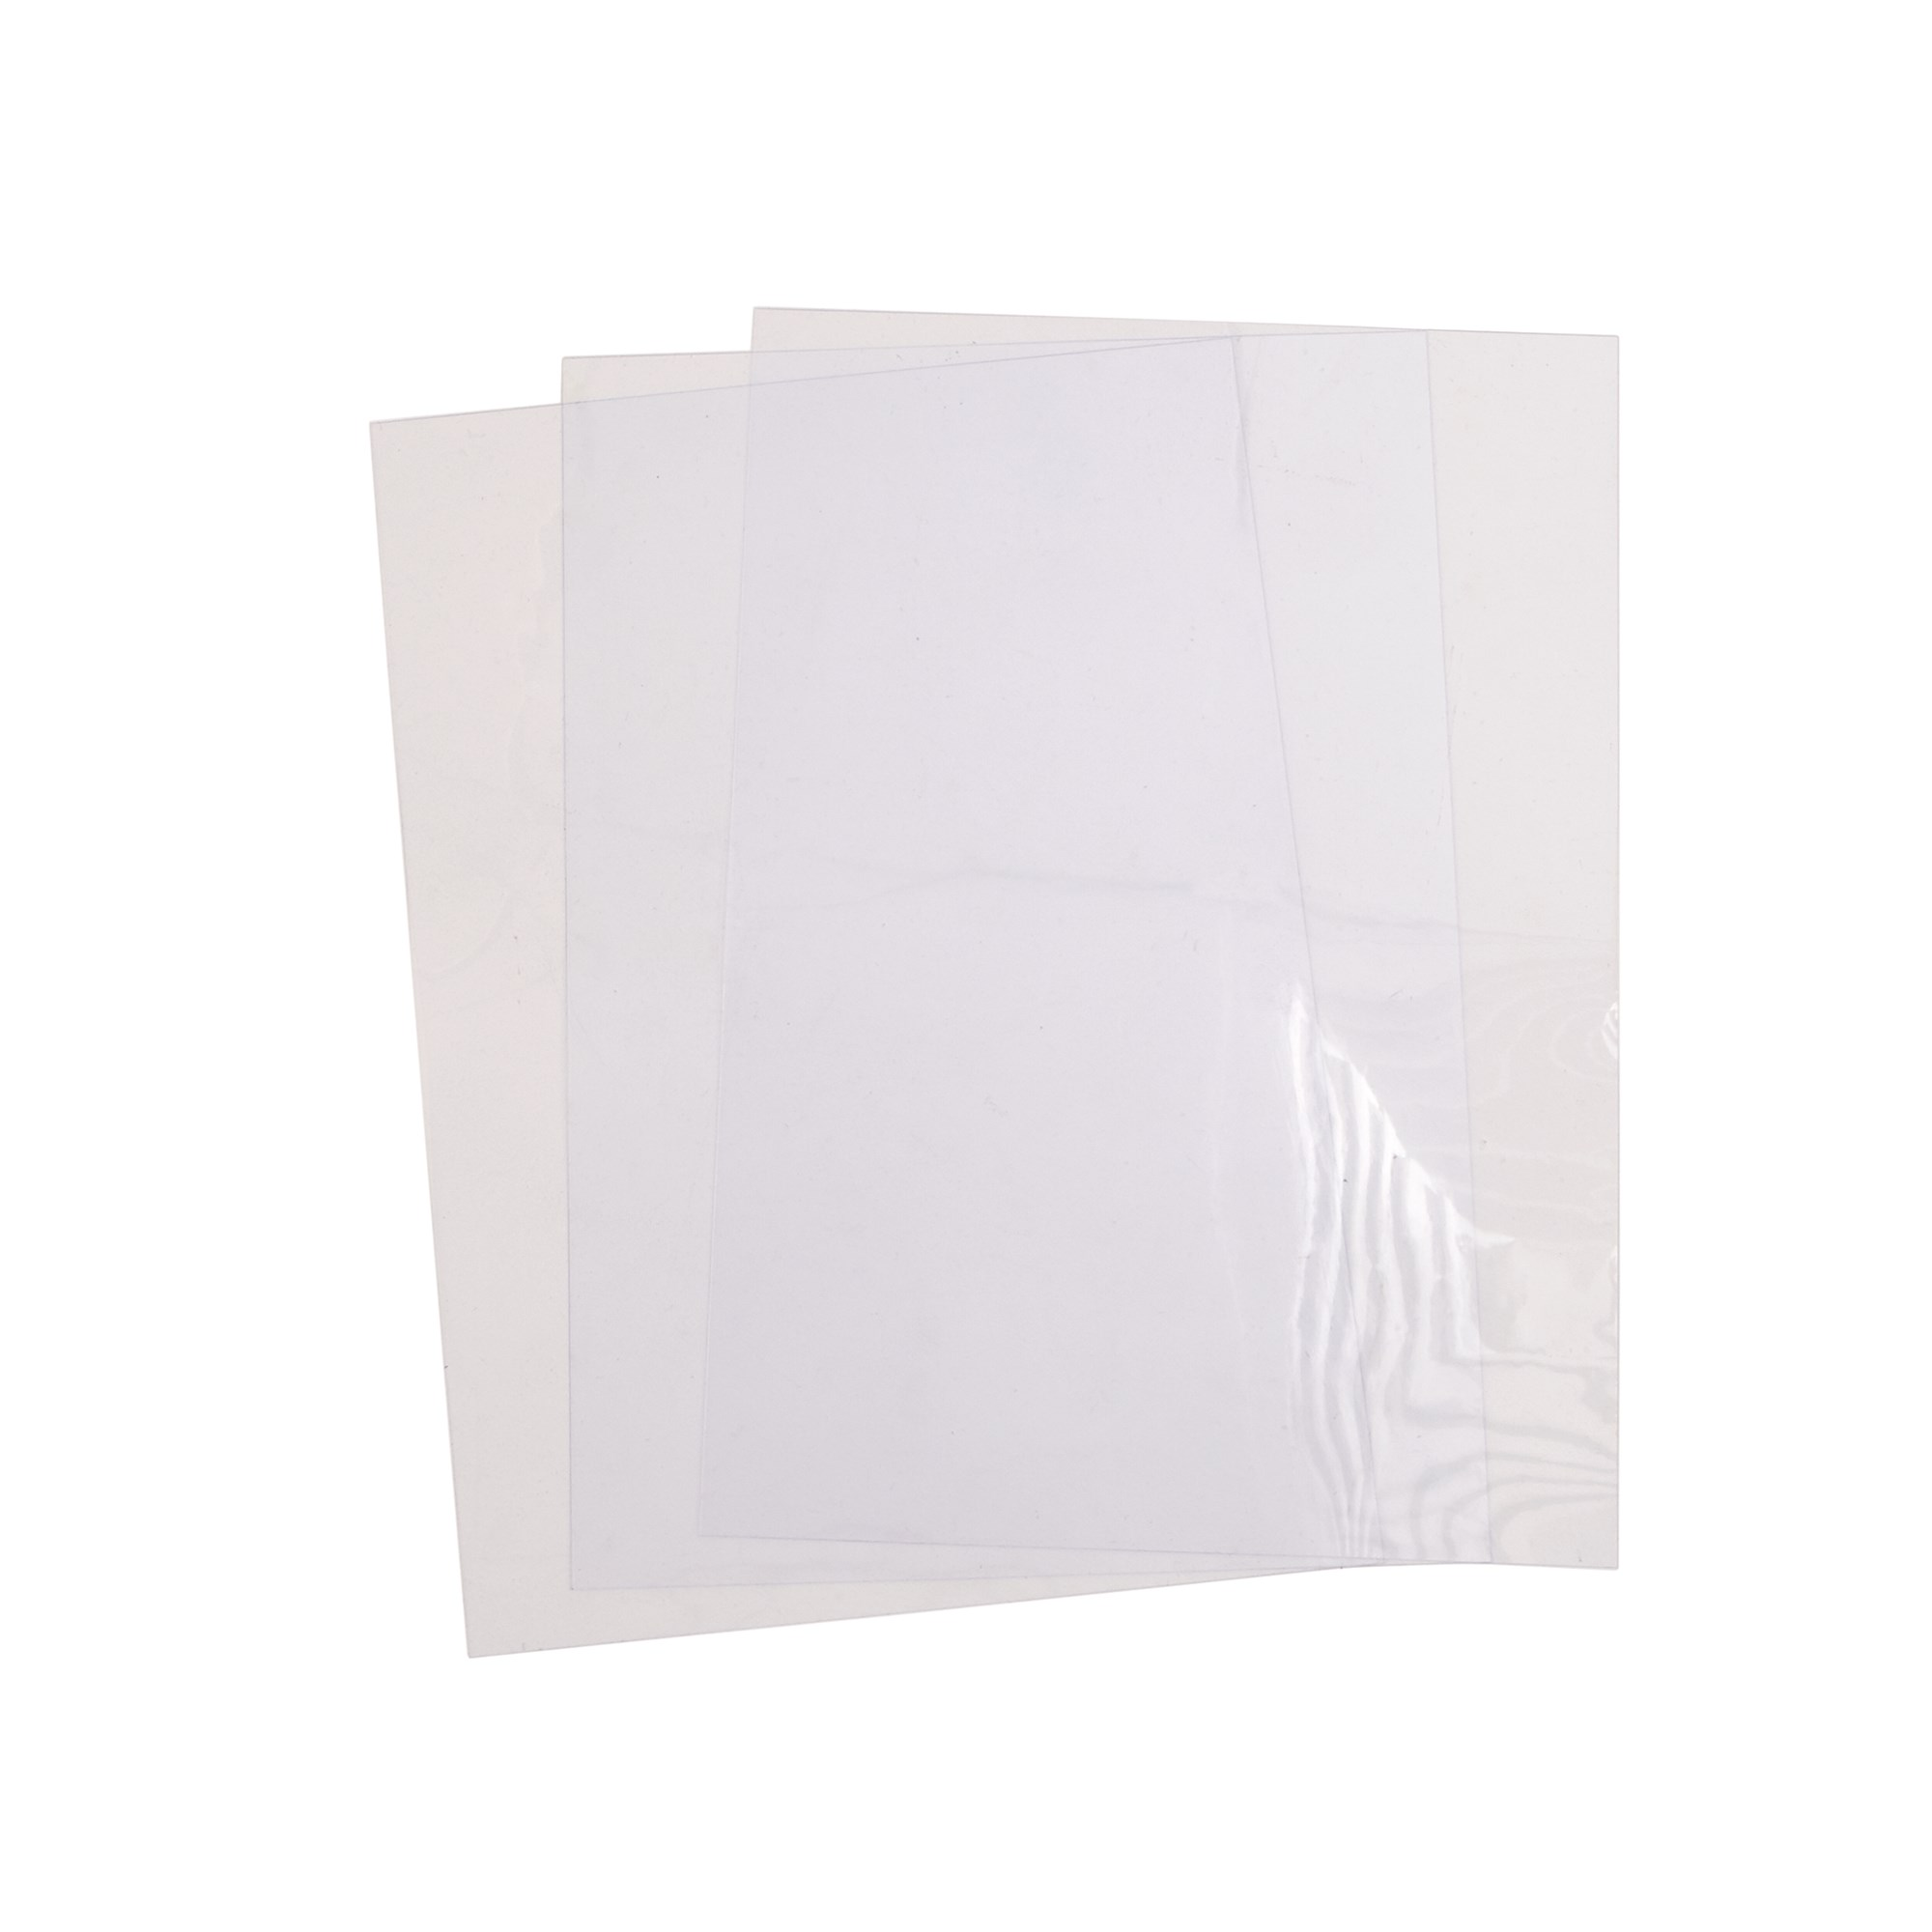 Clear PVC Binding Covers - - Box of 100